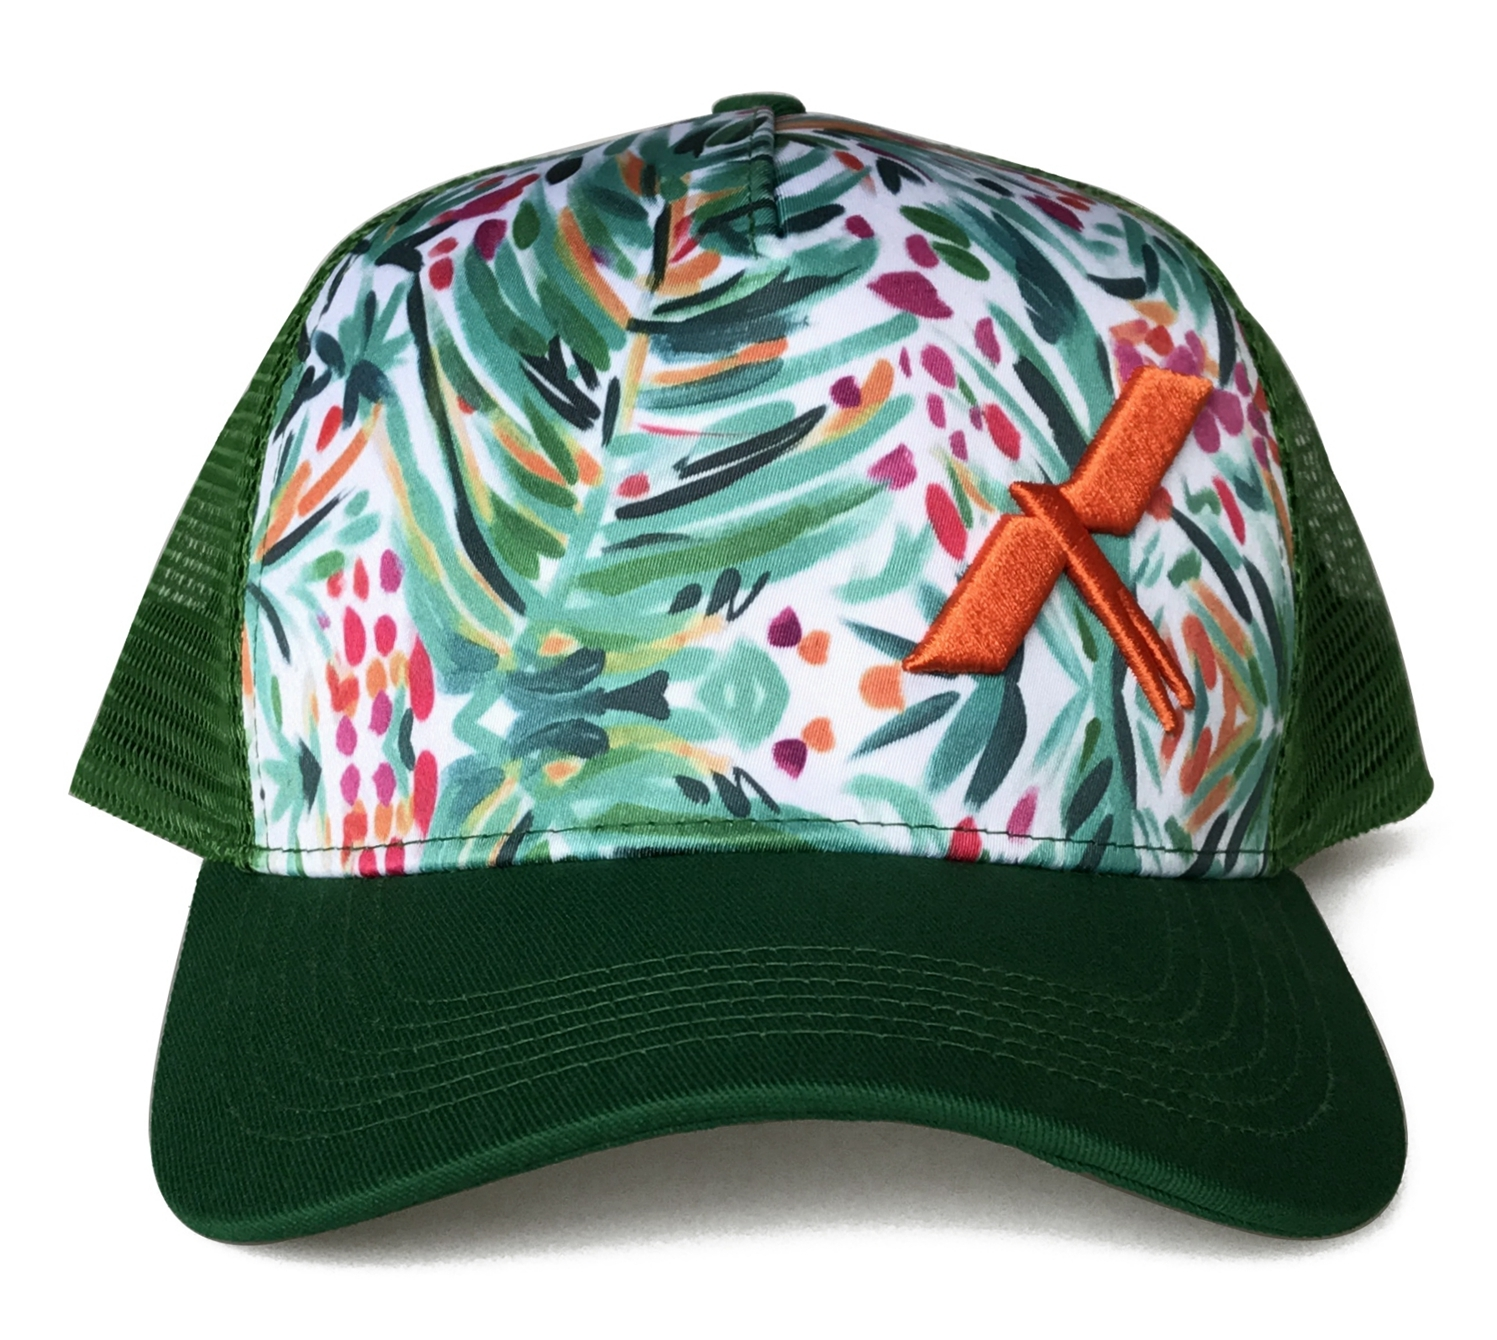 5 panel printing crown orange 3D embroidery logo trucker hat